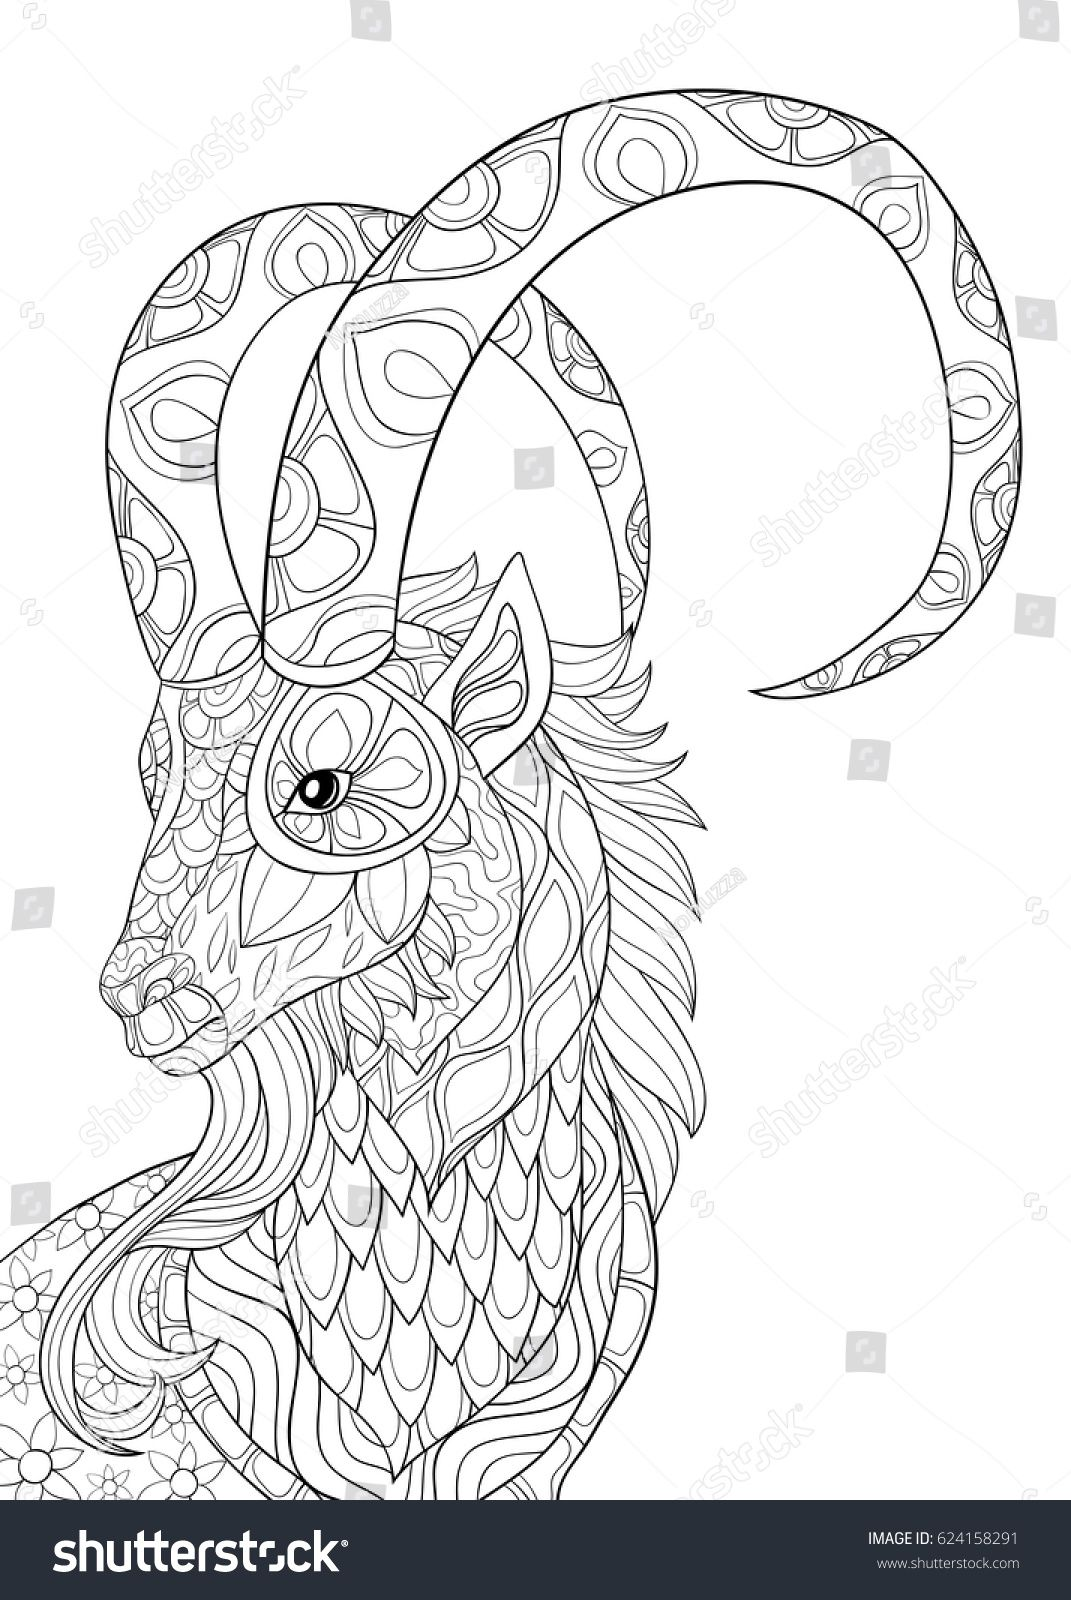 Adult coloring page goatZen art